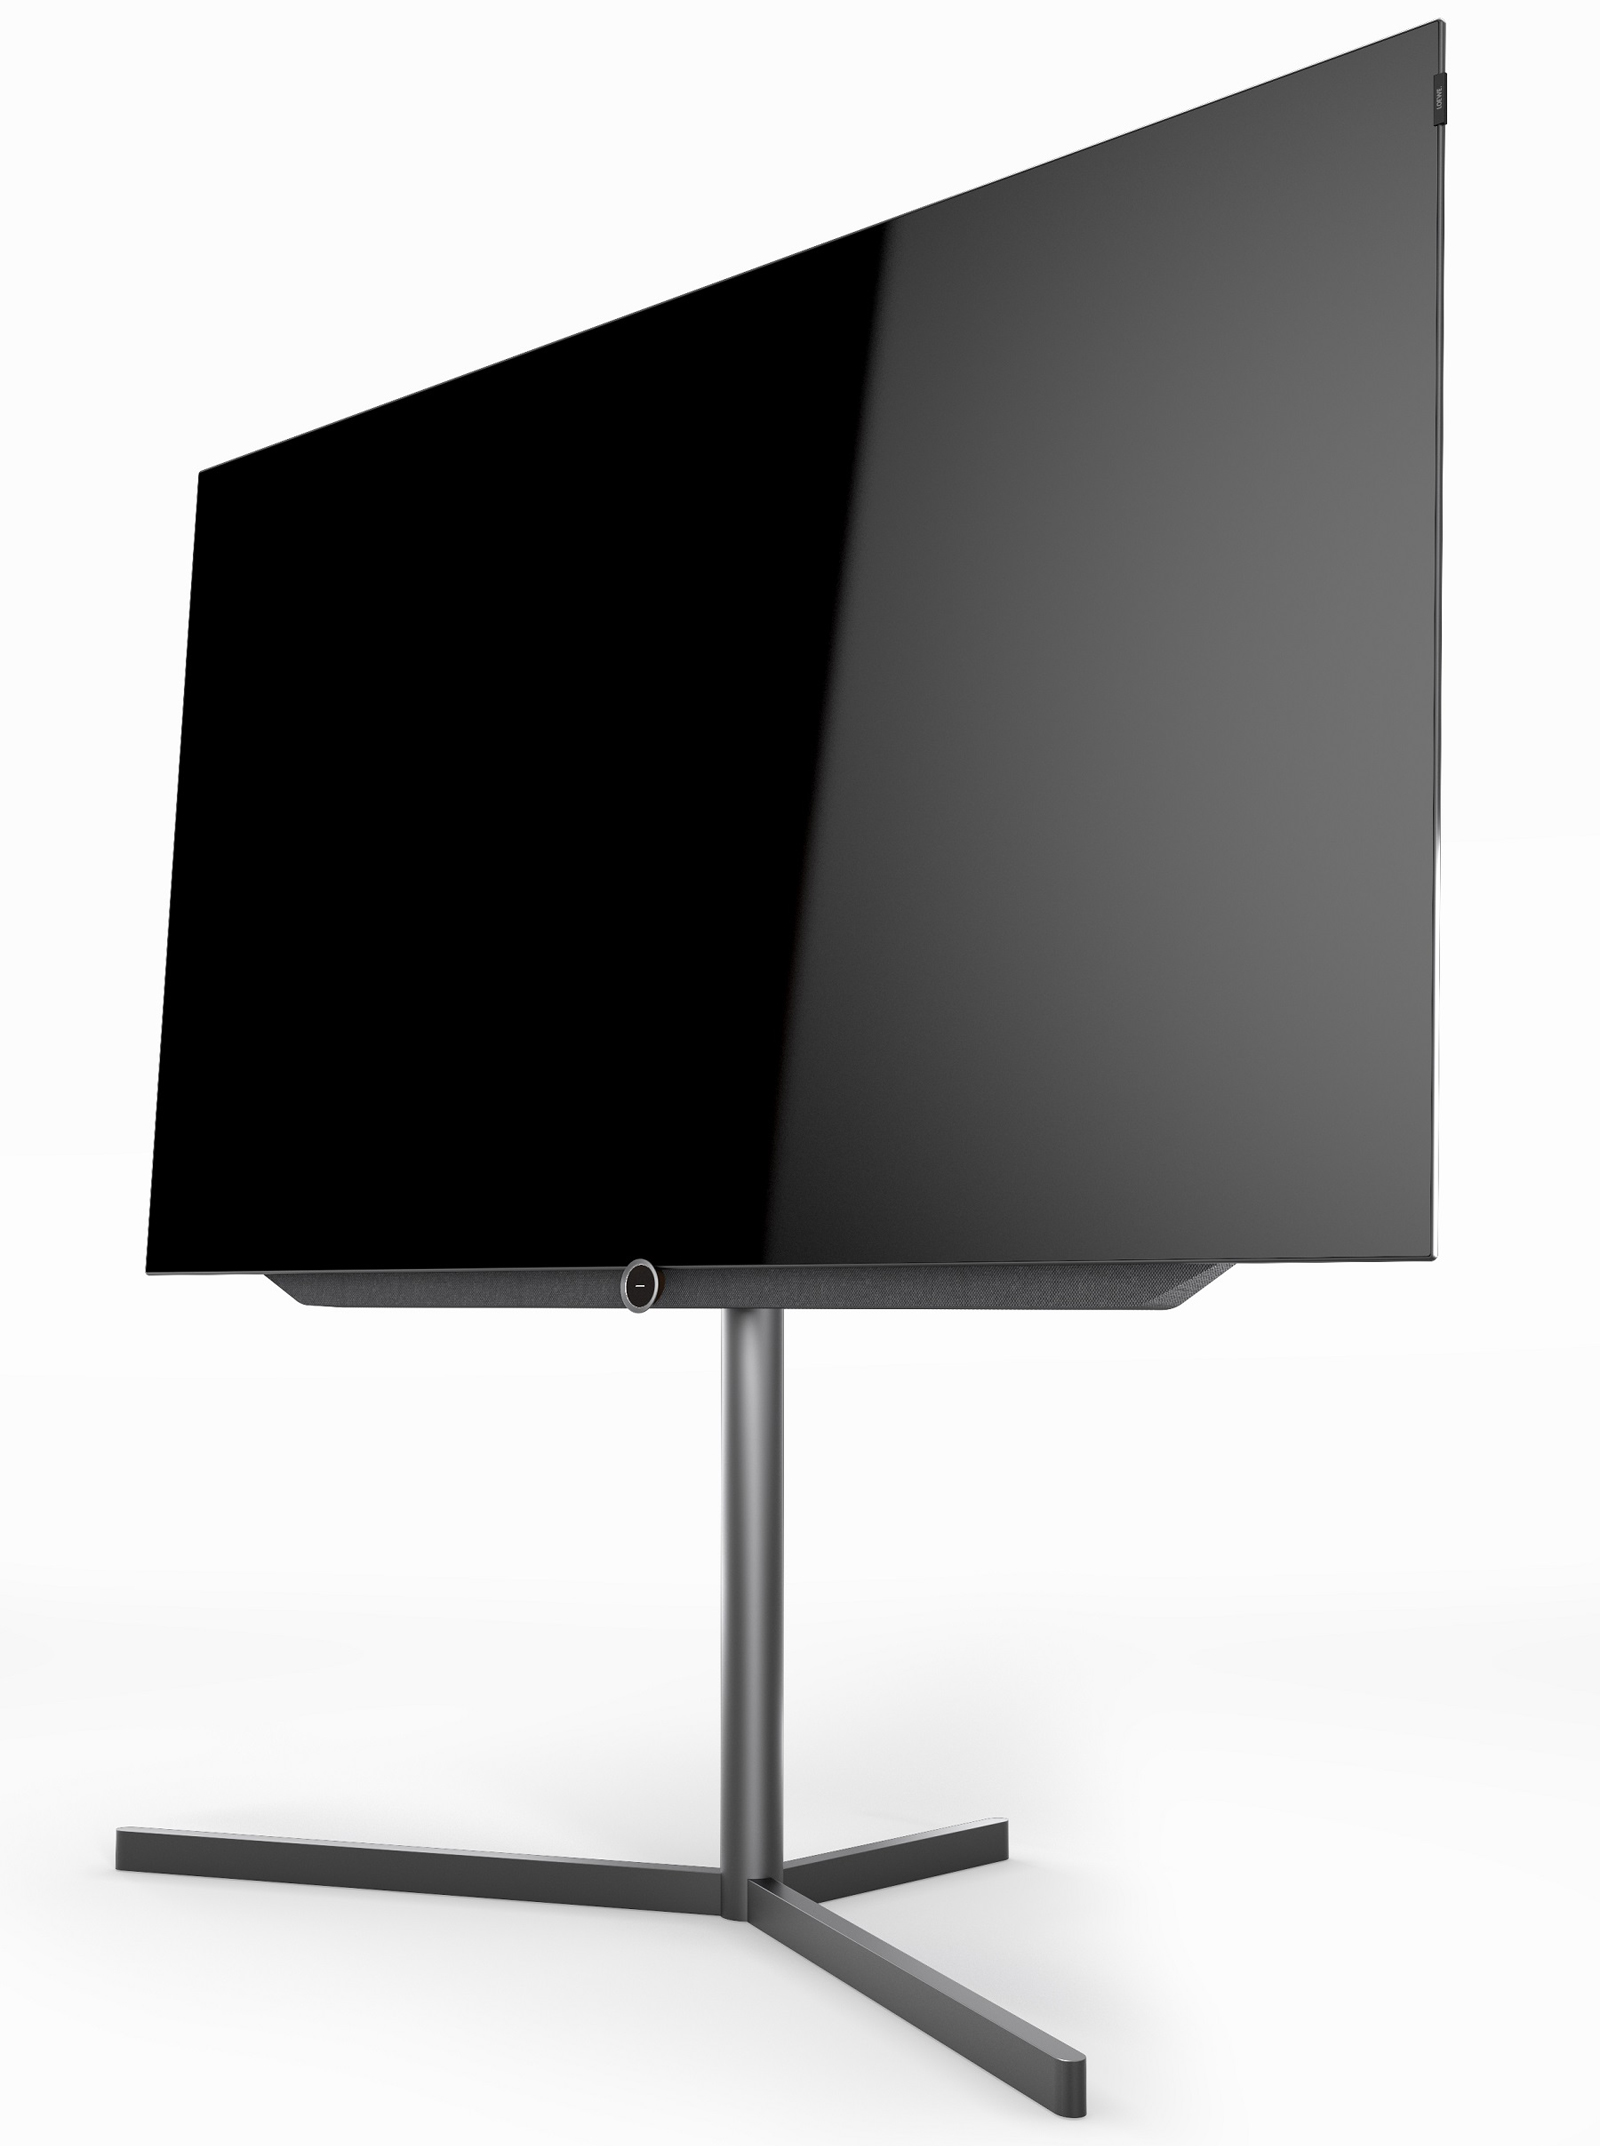 bild 7 loewe oled 4k uhd tv audio venue. Black Bedroom Furniture Sets. Home Design Ideas